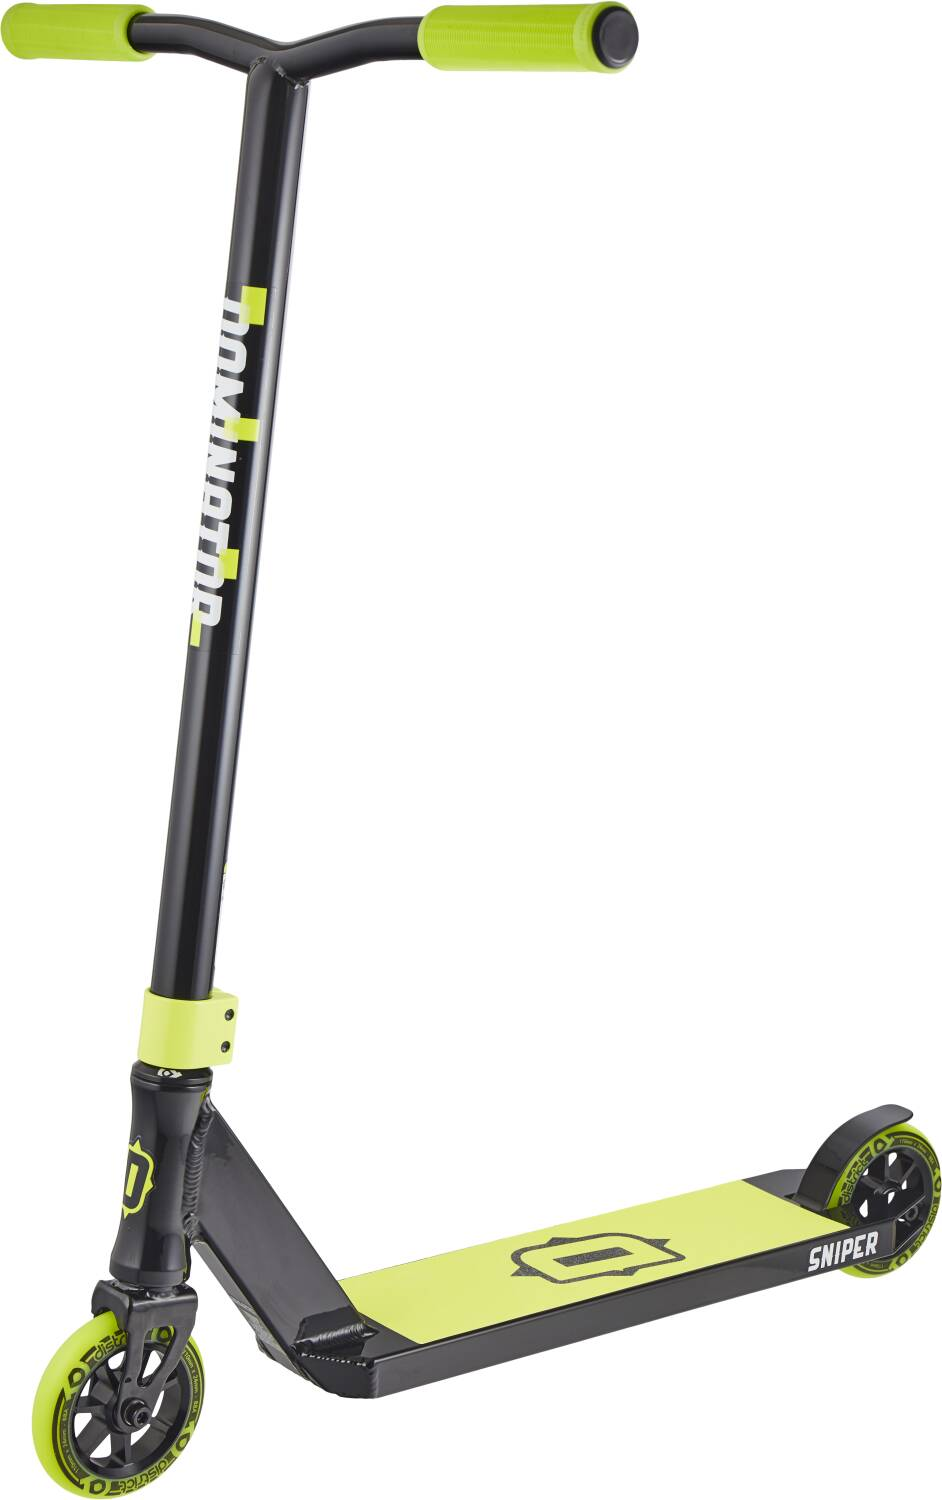 Dominator Sniper Scooter - Black / Yellow